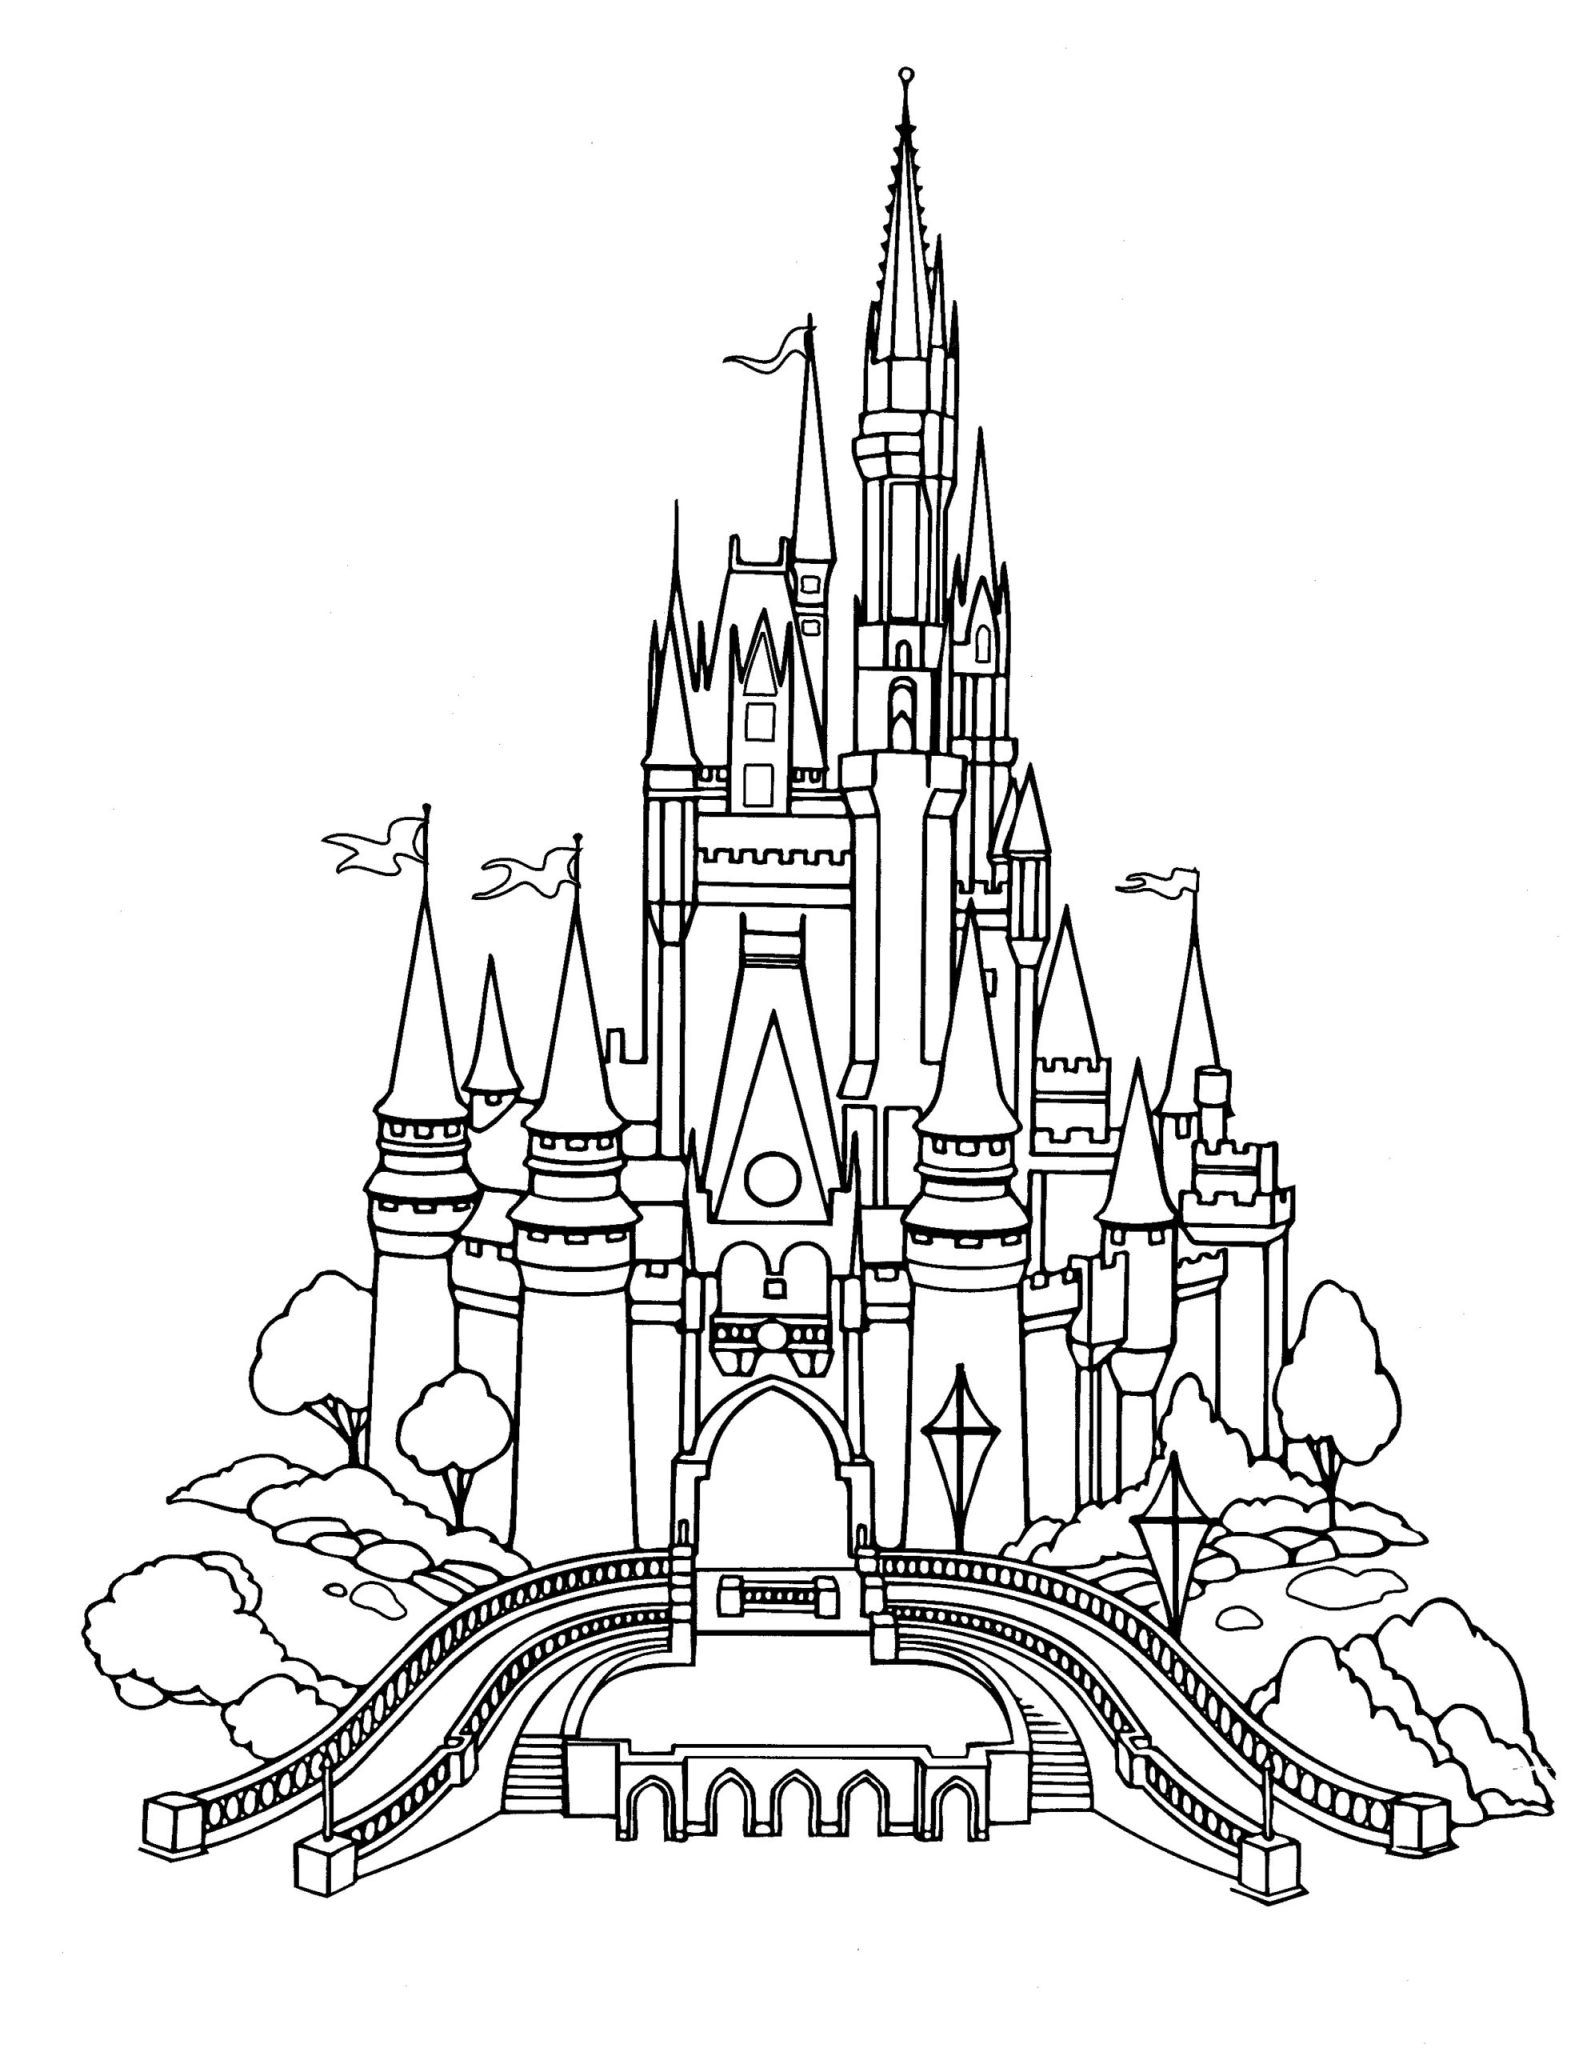 disney world castle coloring pages disneyland castle drawing at getdrawings free download coloring pages disney castle world